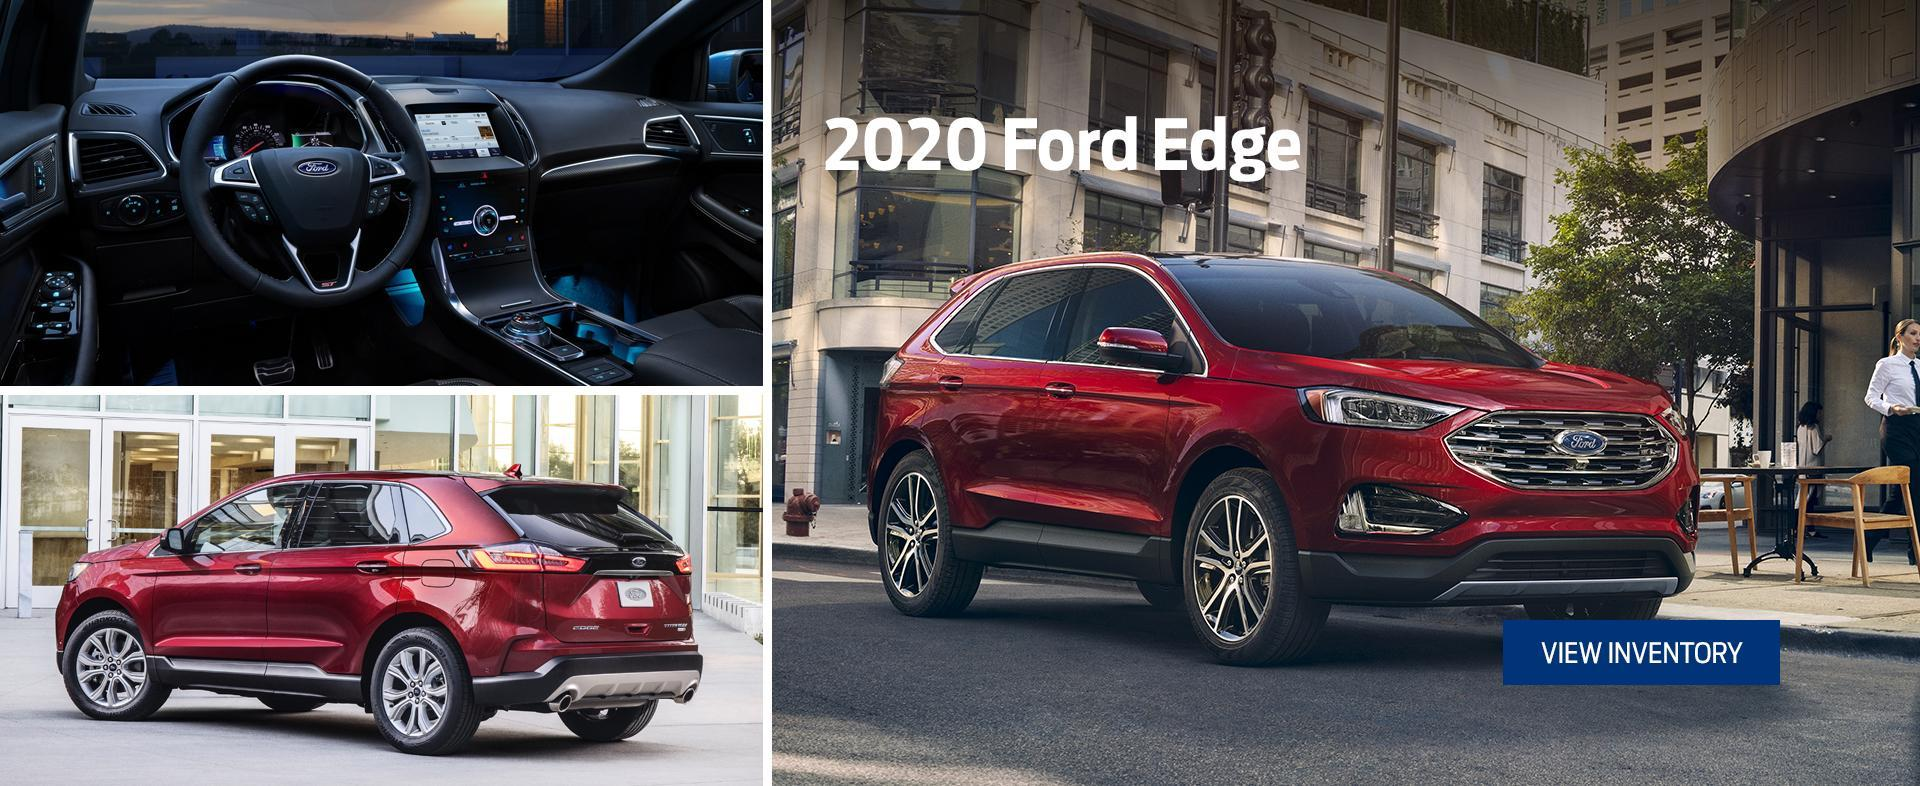 Ford Home 2020 Edge